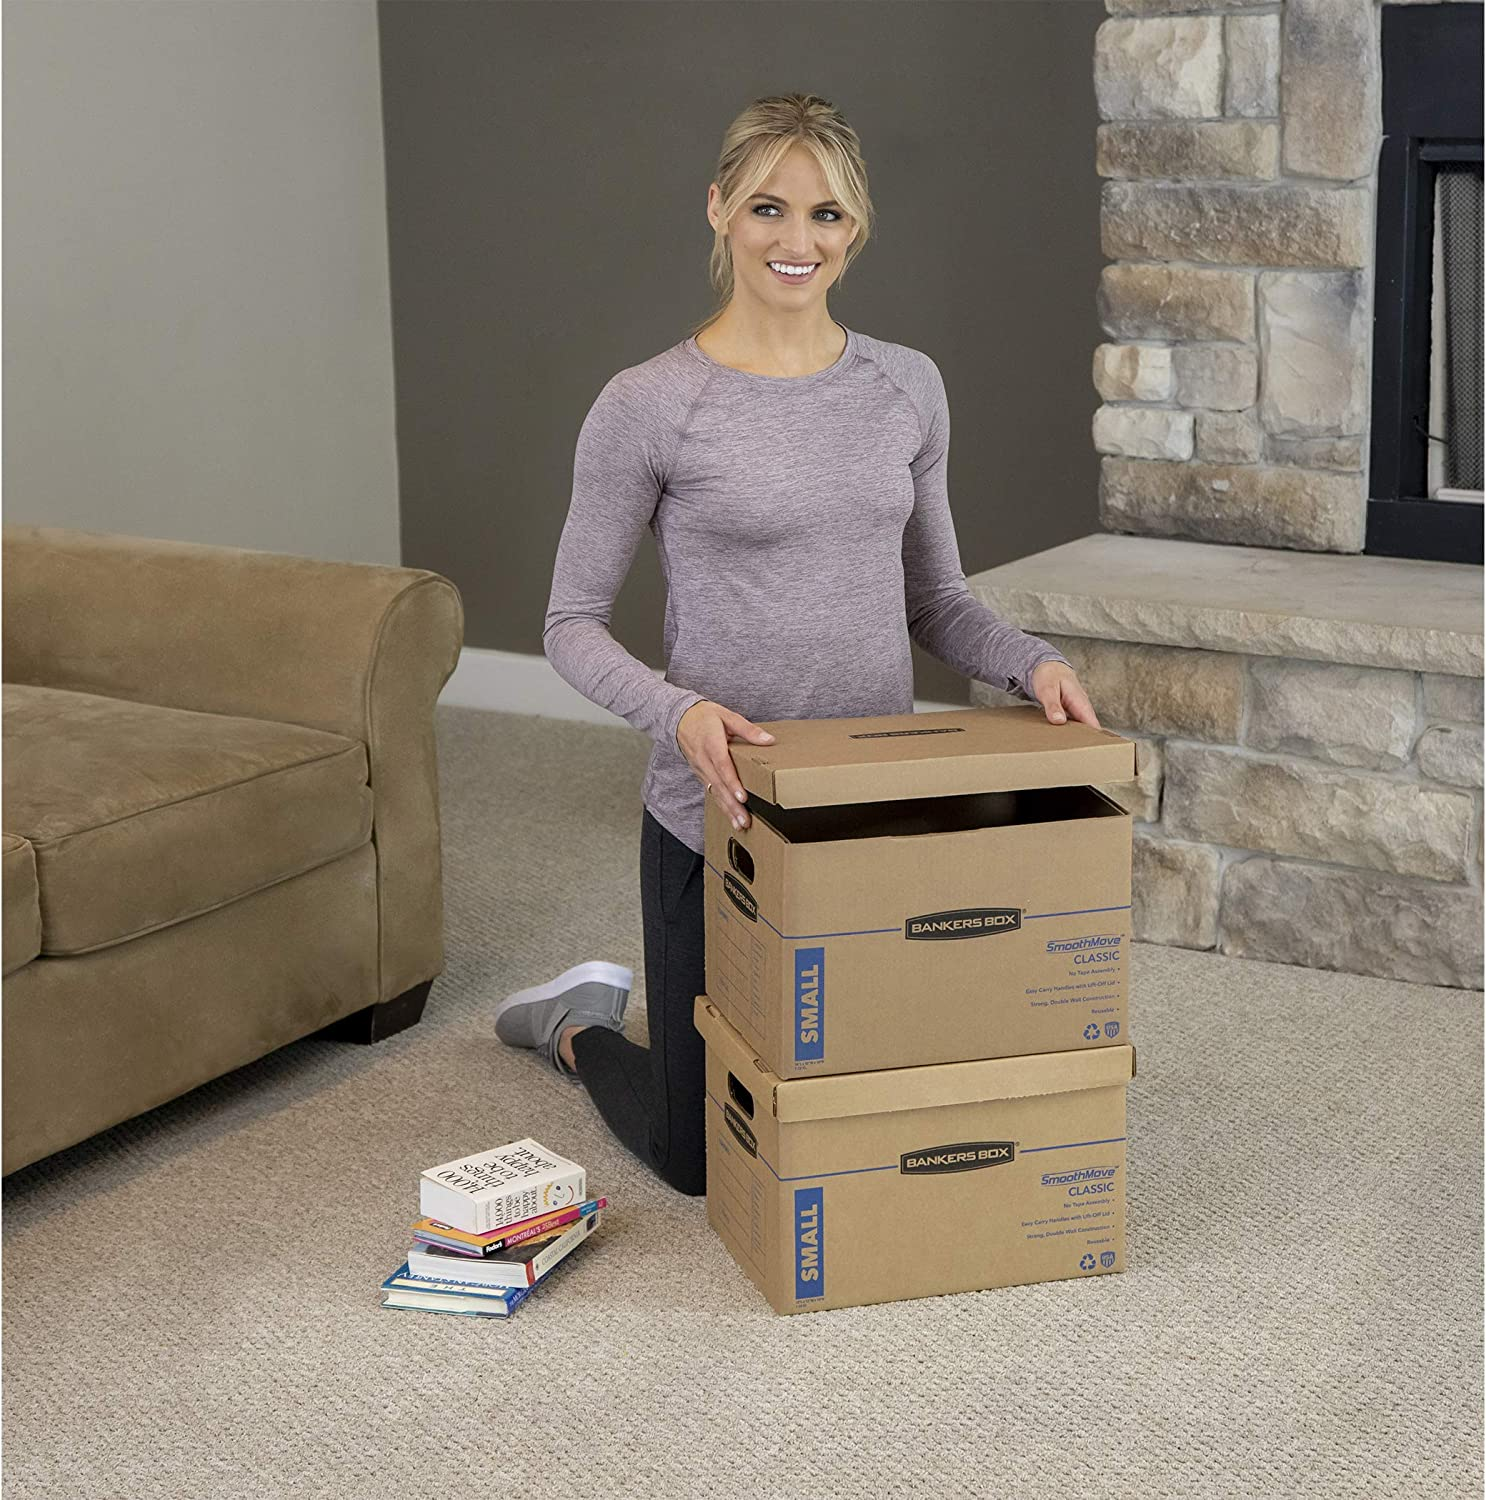 Tape-Free Assembly Easy Carry Handles Bankers Box SmoothMove Classic Moving Boxes 7717201 Medium 18 x 15 x 14 Inches,